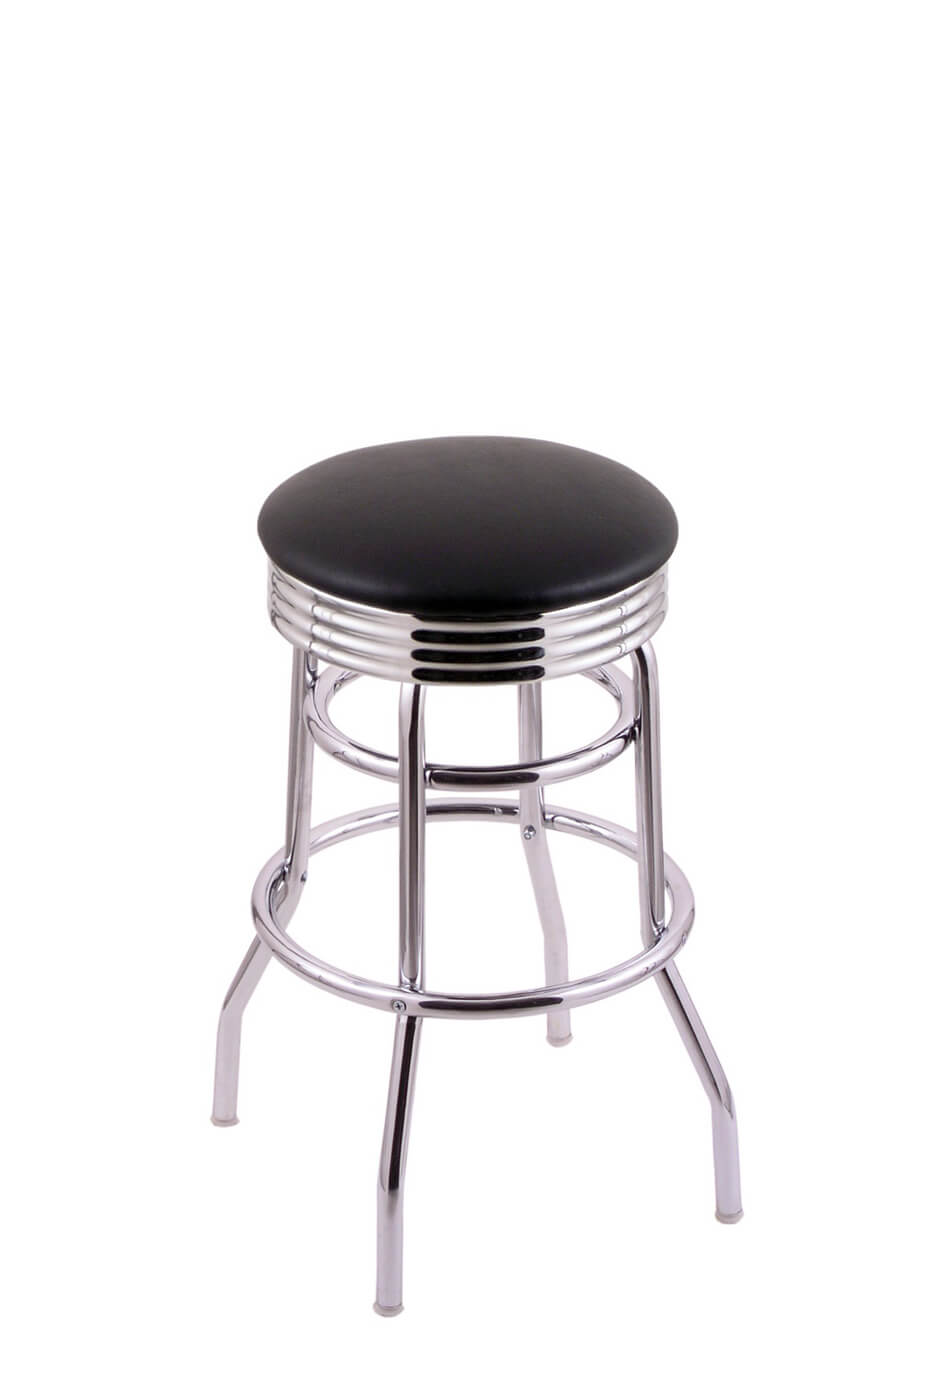 C7C3C Classic Series Backless Swivel Stool